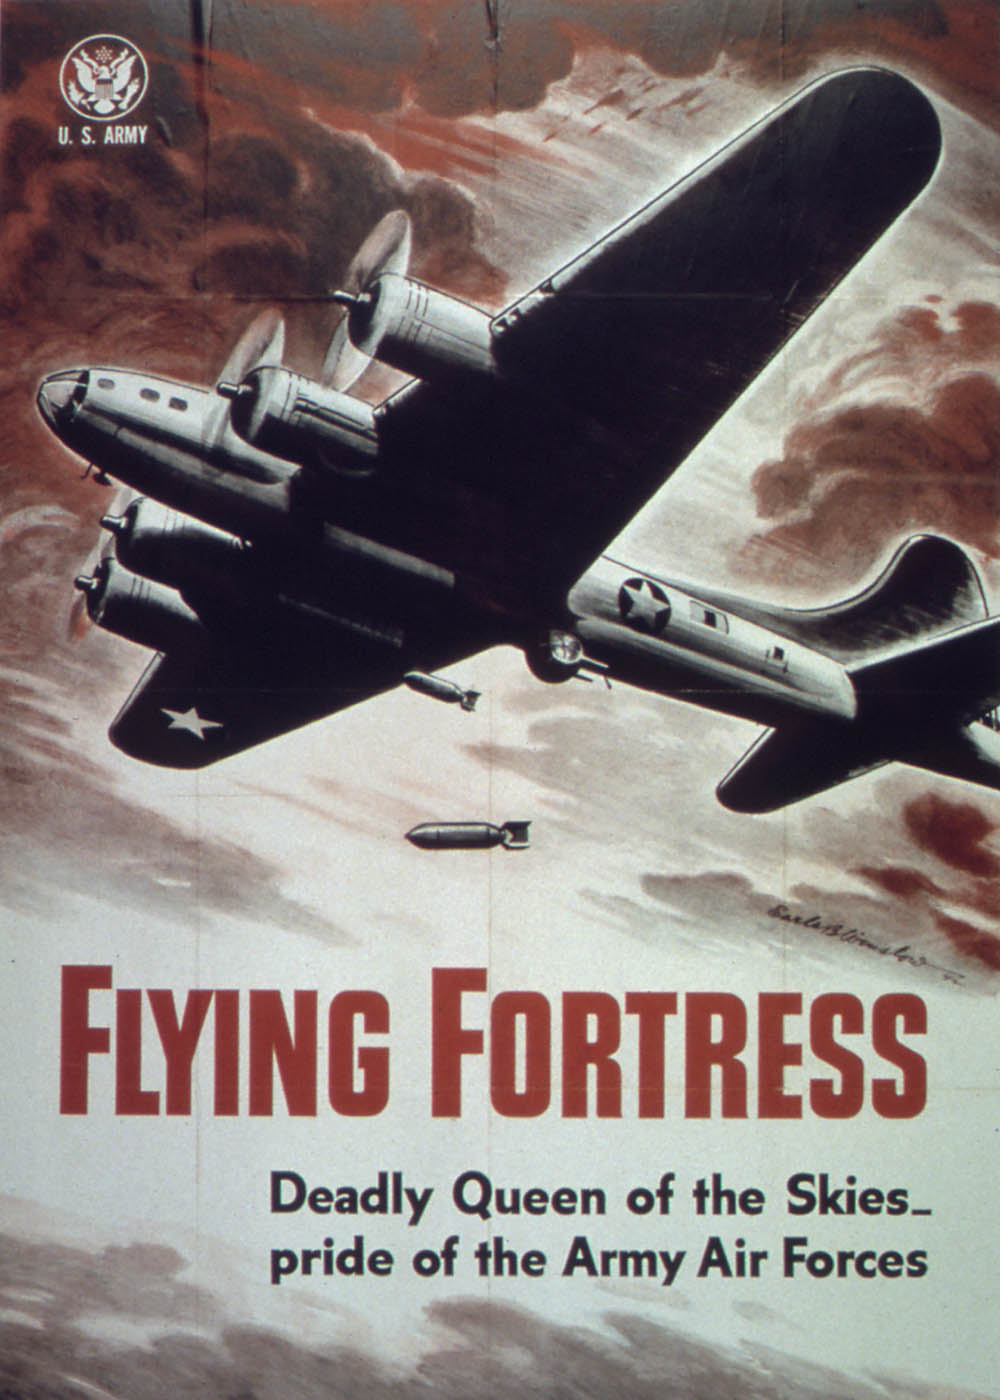 B-17 Flying Fortress: Deadly Queen of the Skies... pride of the Army Air Forces